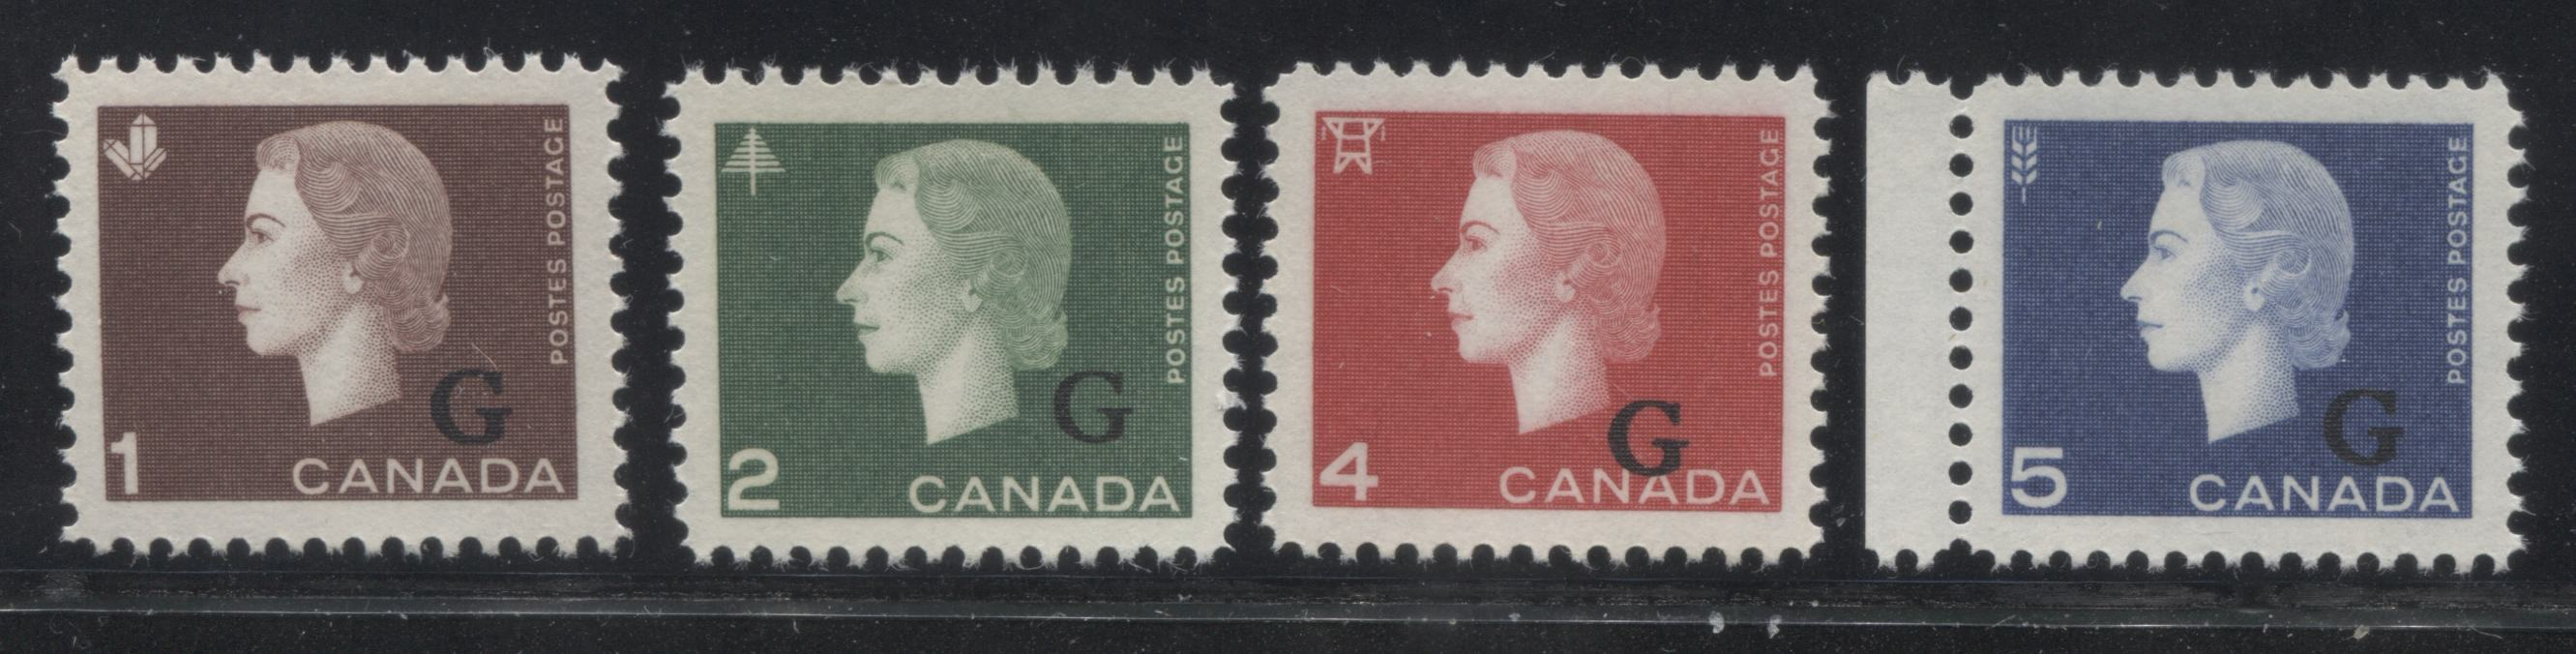 Canada #O46-O49 1c-5c Queen Elizabeth II 1962-63 Cameo Issue Official G Overprints, a Very Fine NH Set Brixton Chrome